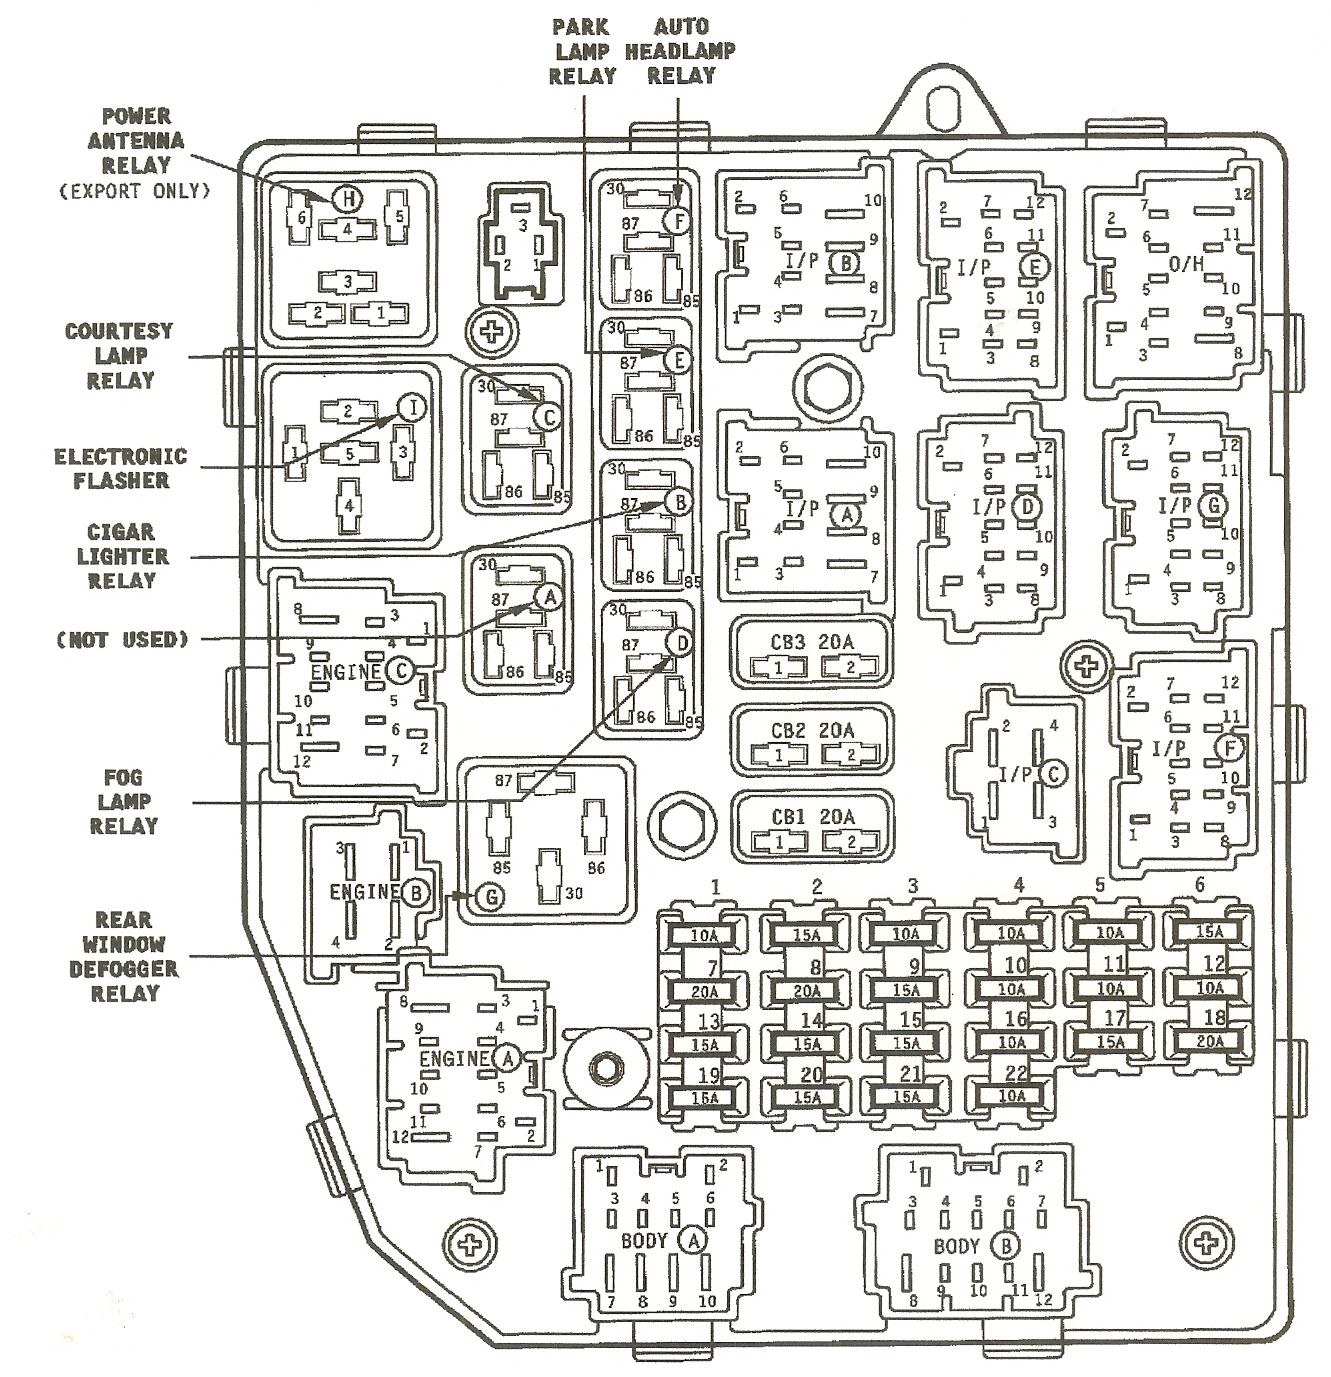 1996 Jeep Grand Cherokee Fuse Box Diagram Autos Y Motos Autos